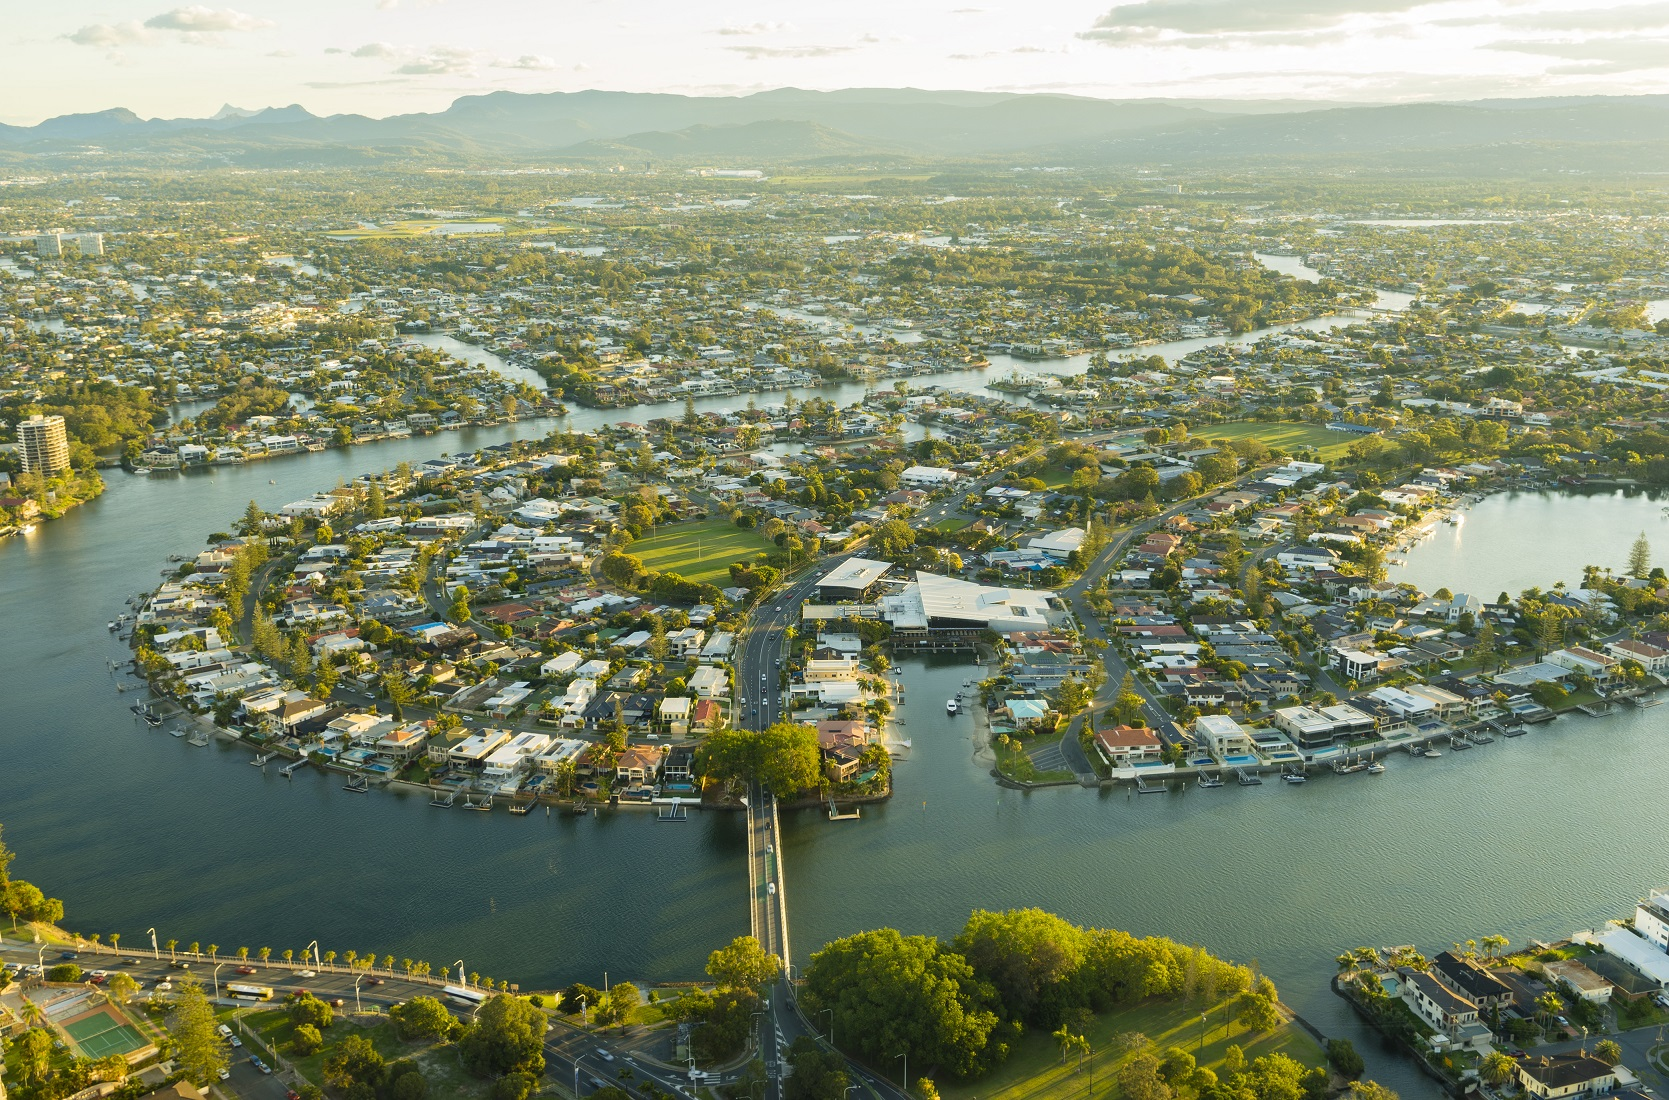 Looking south over the Nerang River into Bundall, Broadbeach Waters. Clear Island Waters. The many rivers and creeks on the Gold Coast have allowed for extensive canals, providing relatively affordable waterfront property for a city of its size.